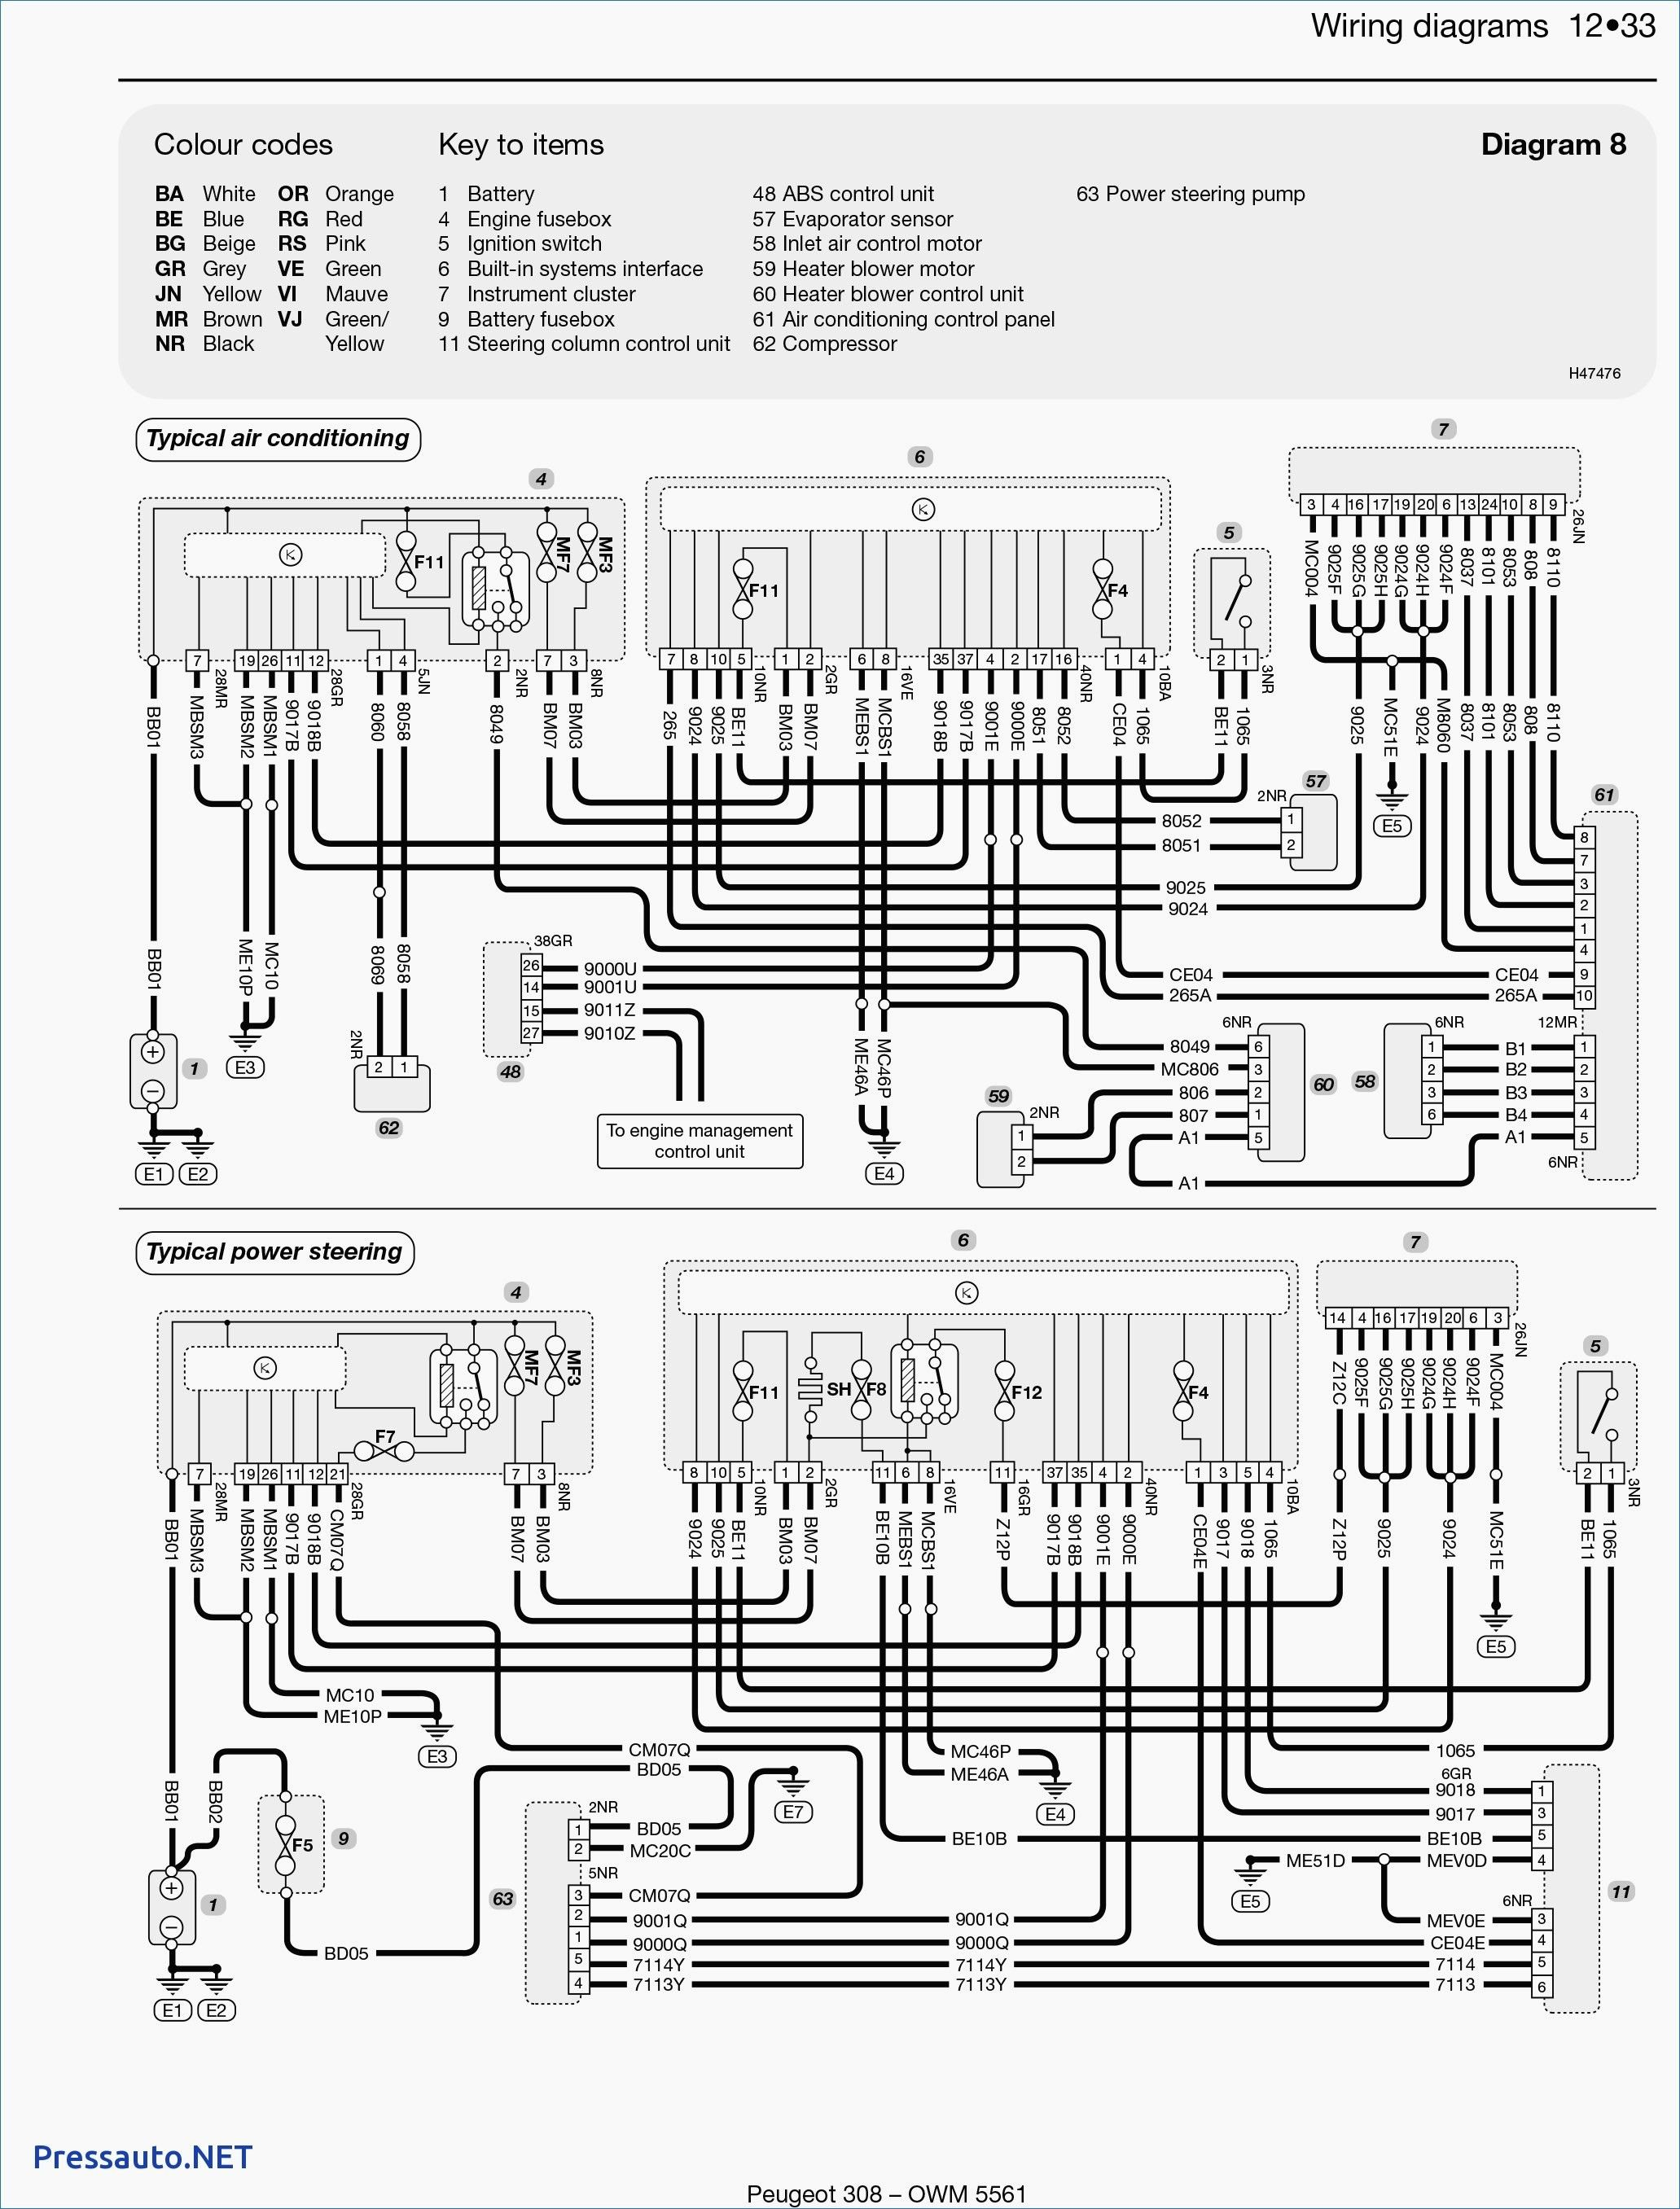 Peugeot 106 Ignition Wiring Diagram Worksheet And Mopar Diagrams Instrument Panel For 206 Stereo Best Of Fortable In Ewolucja Rh Pinterest Com Universal Switch Electronic